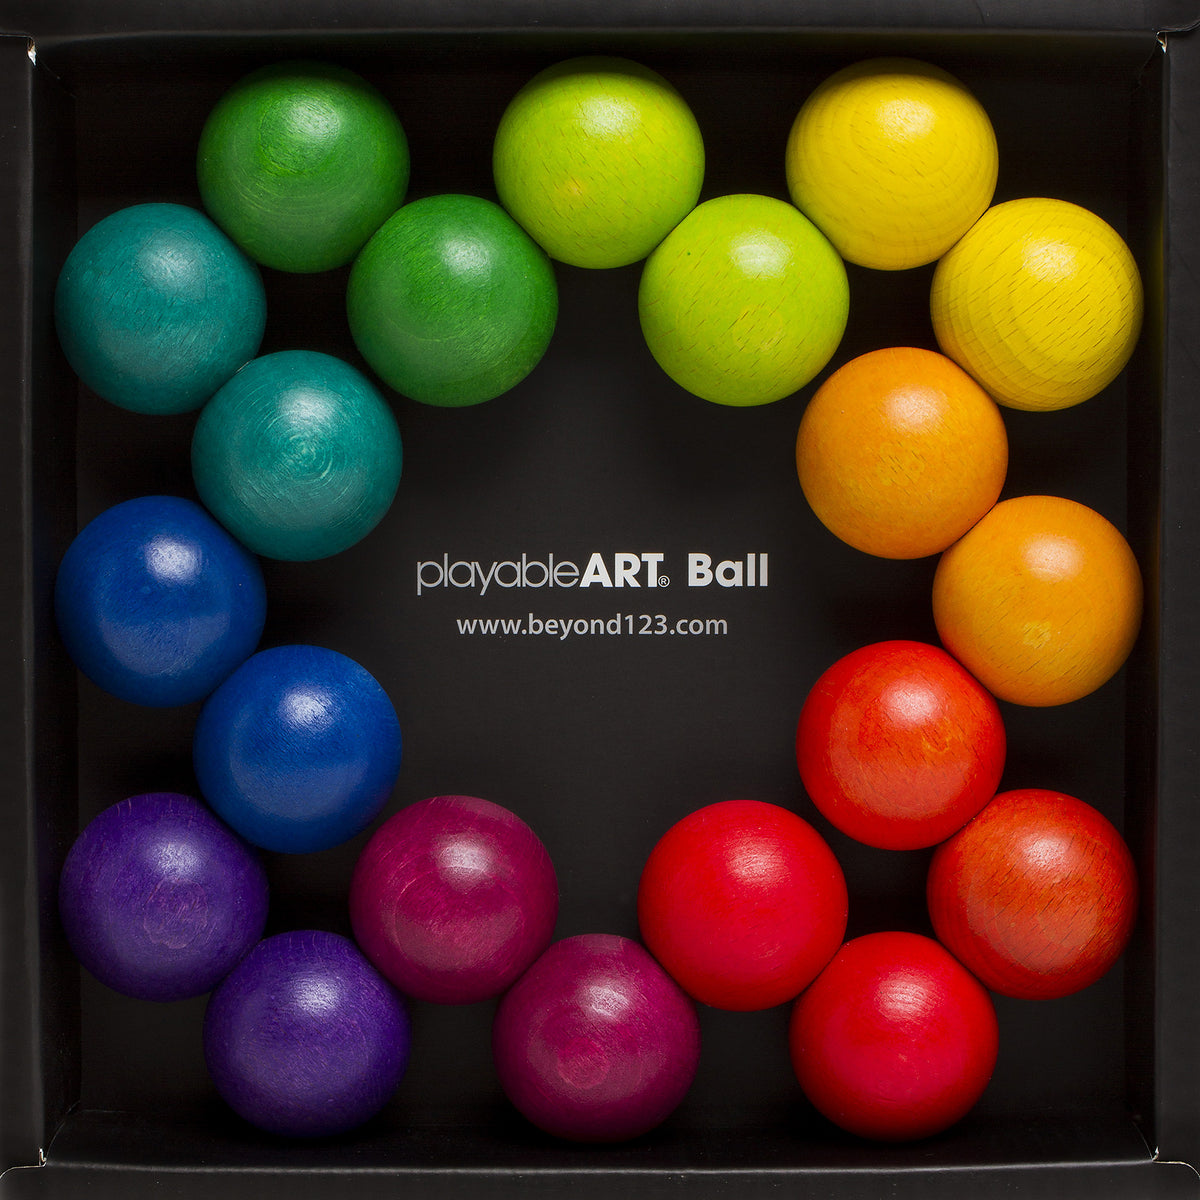 Playable Art Ball | Getty Store